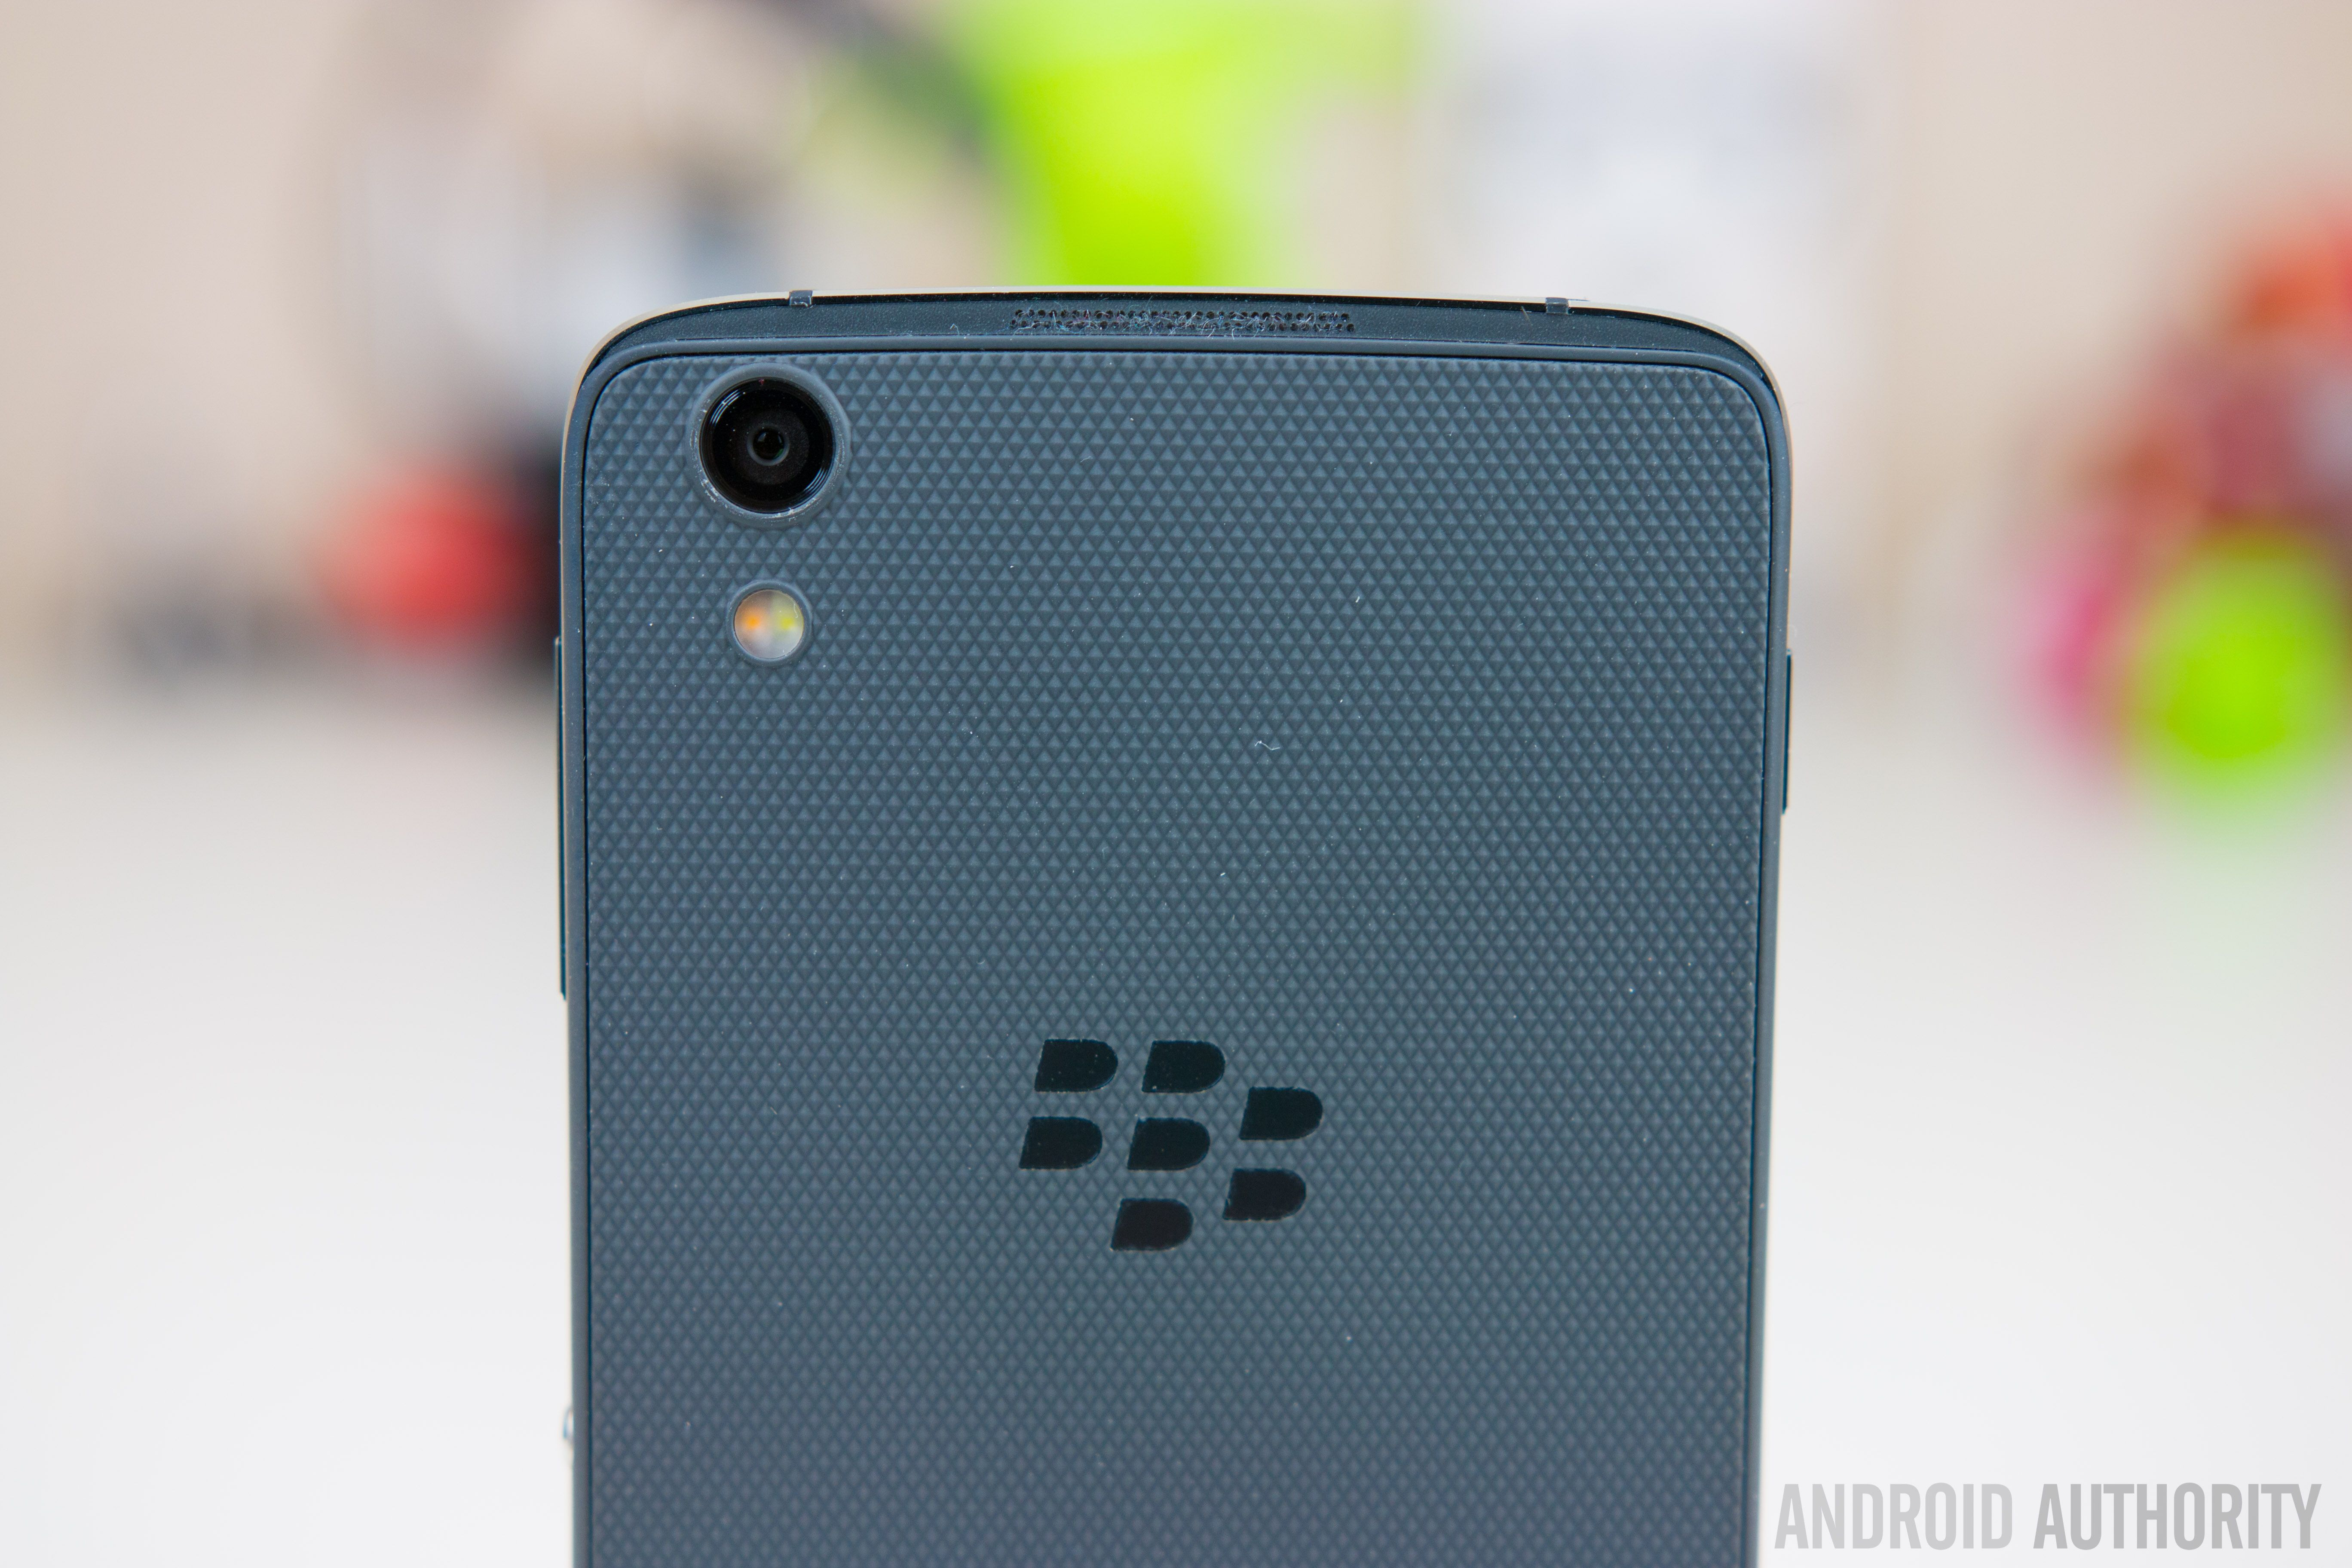 TCL promises an evolutionary first with the new BlackBerry